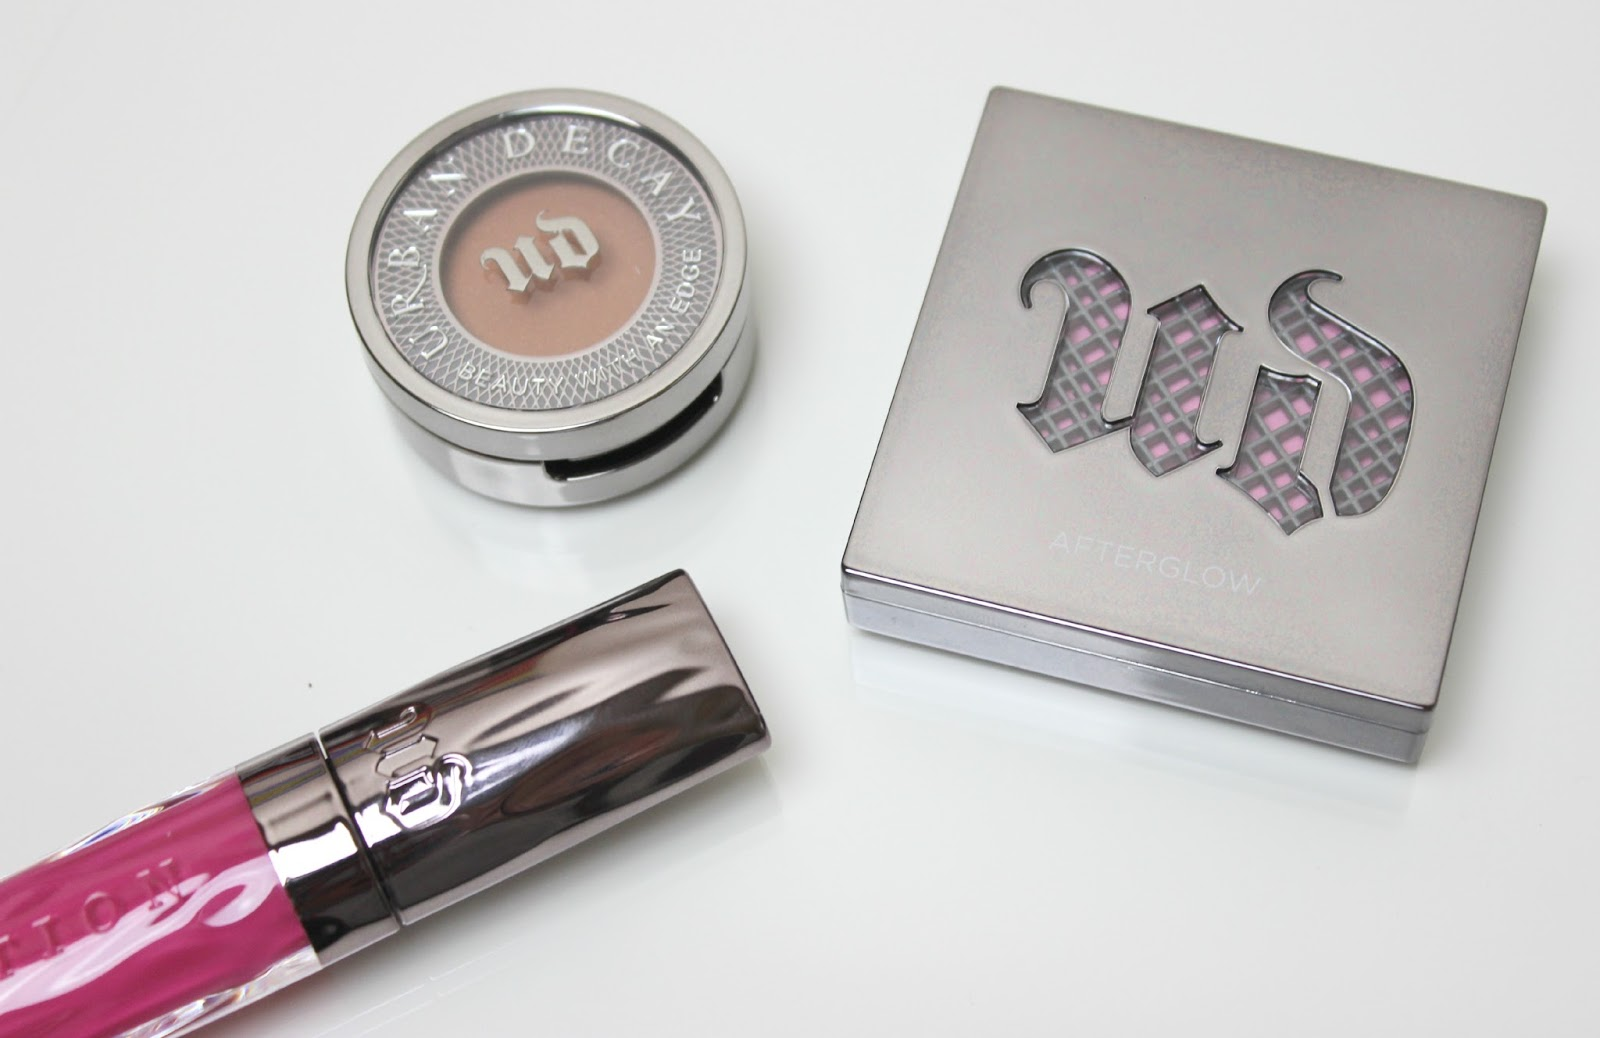 A picture of Urban Decay Summer 2015 Collection